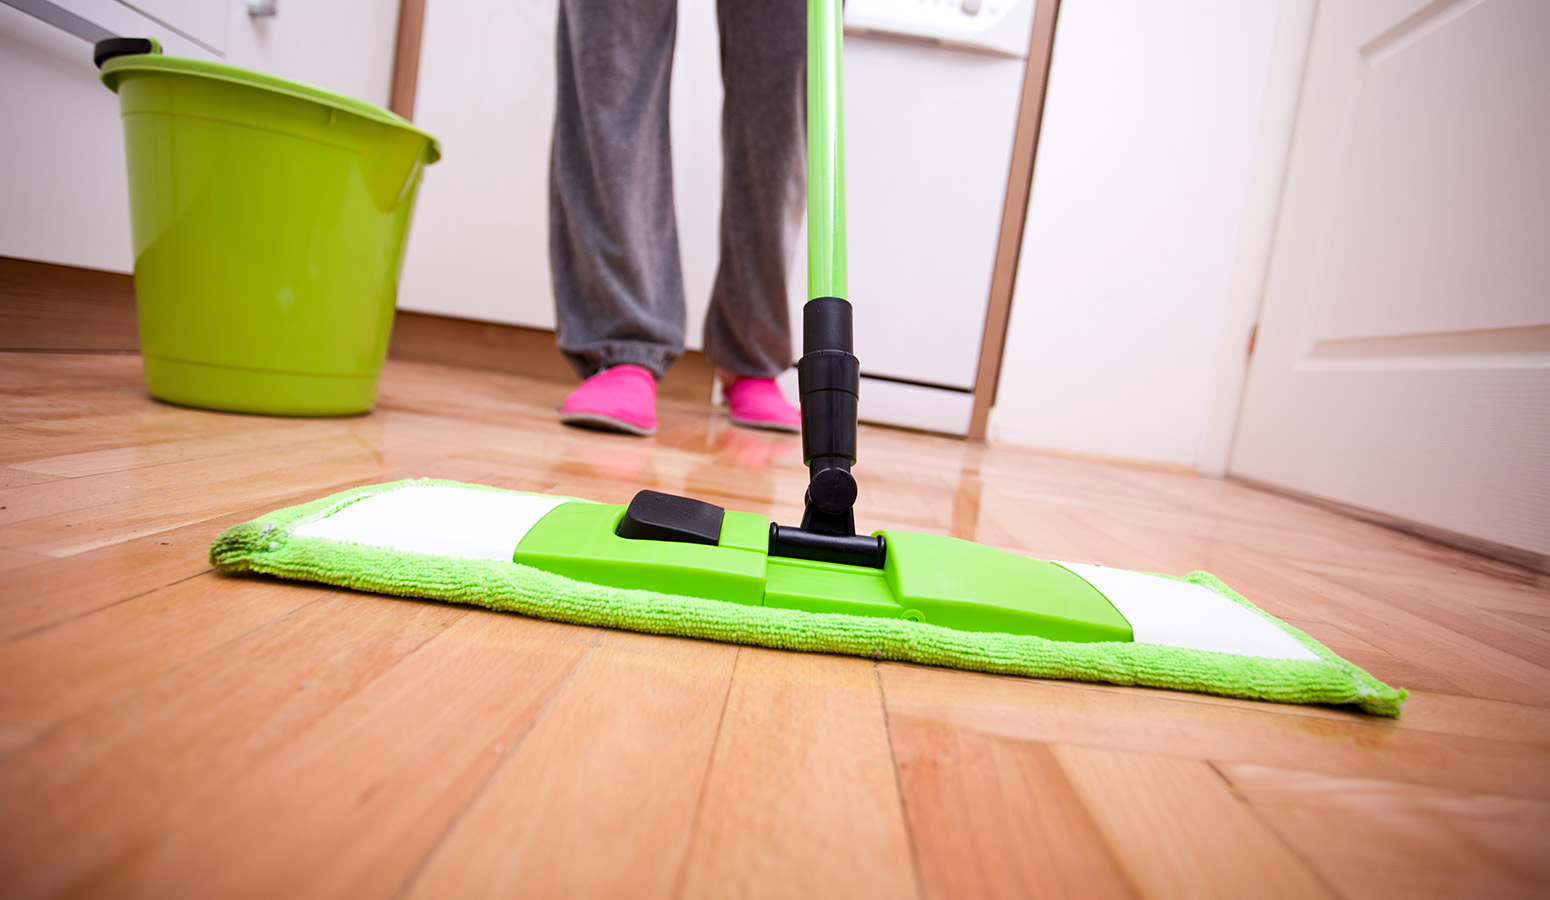 Top 10 Cleaning Tips From the Pros4